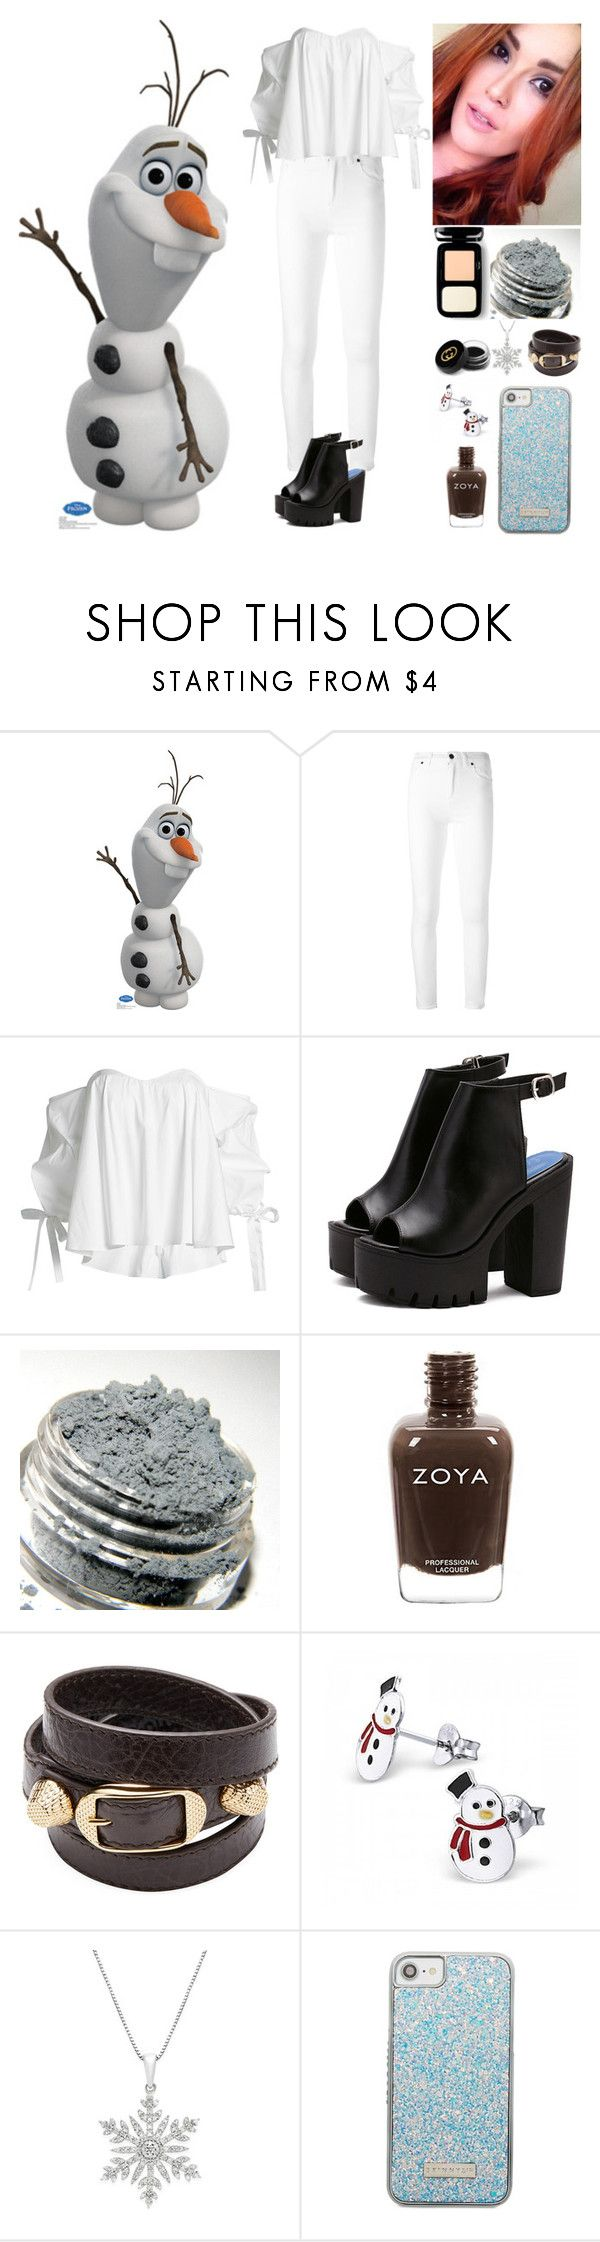 """""""Olaf."""" by annacastrolima ❤ liked on Polyvore featuring Tom Ford, Caroline Constas, Balenciaga, Skinnydip, Gucci, white, disney, frozen, disneycharacter and olaf"""